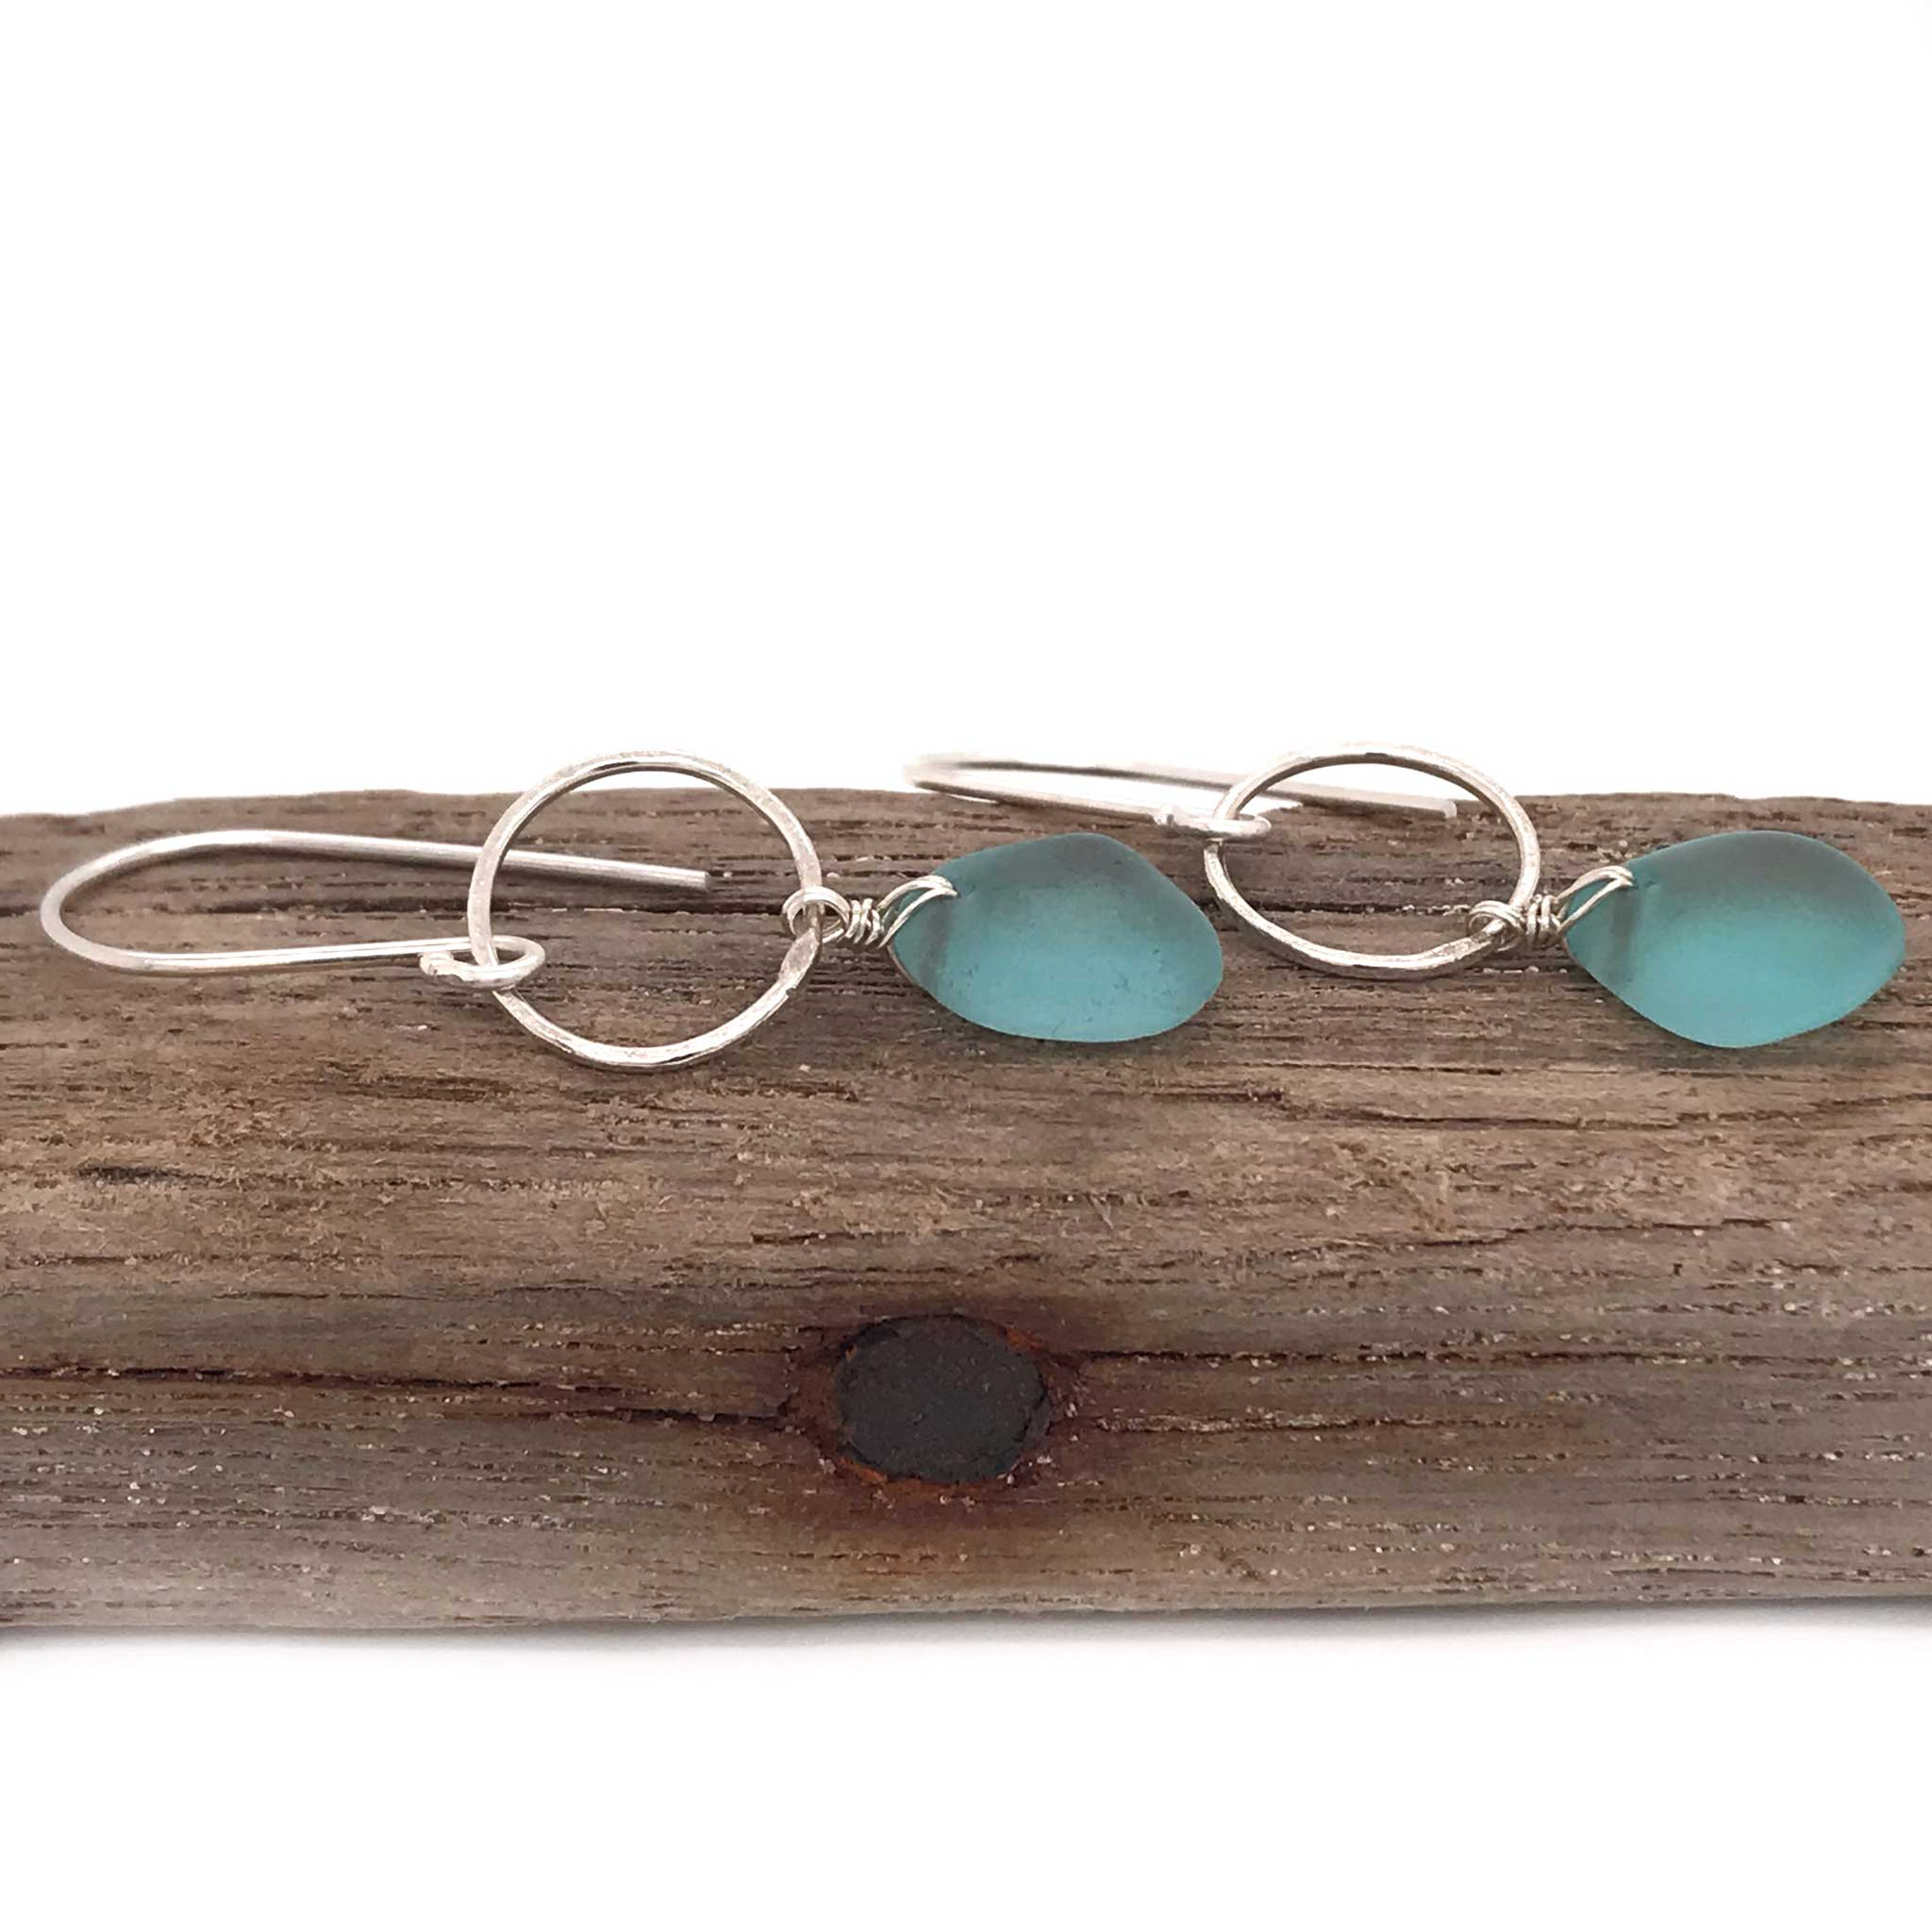 aqua blue earrings seaglass and sterling silver circles kriket Broadhurst jewellery